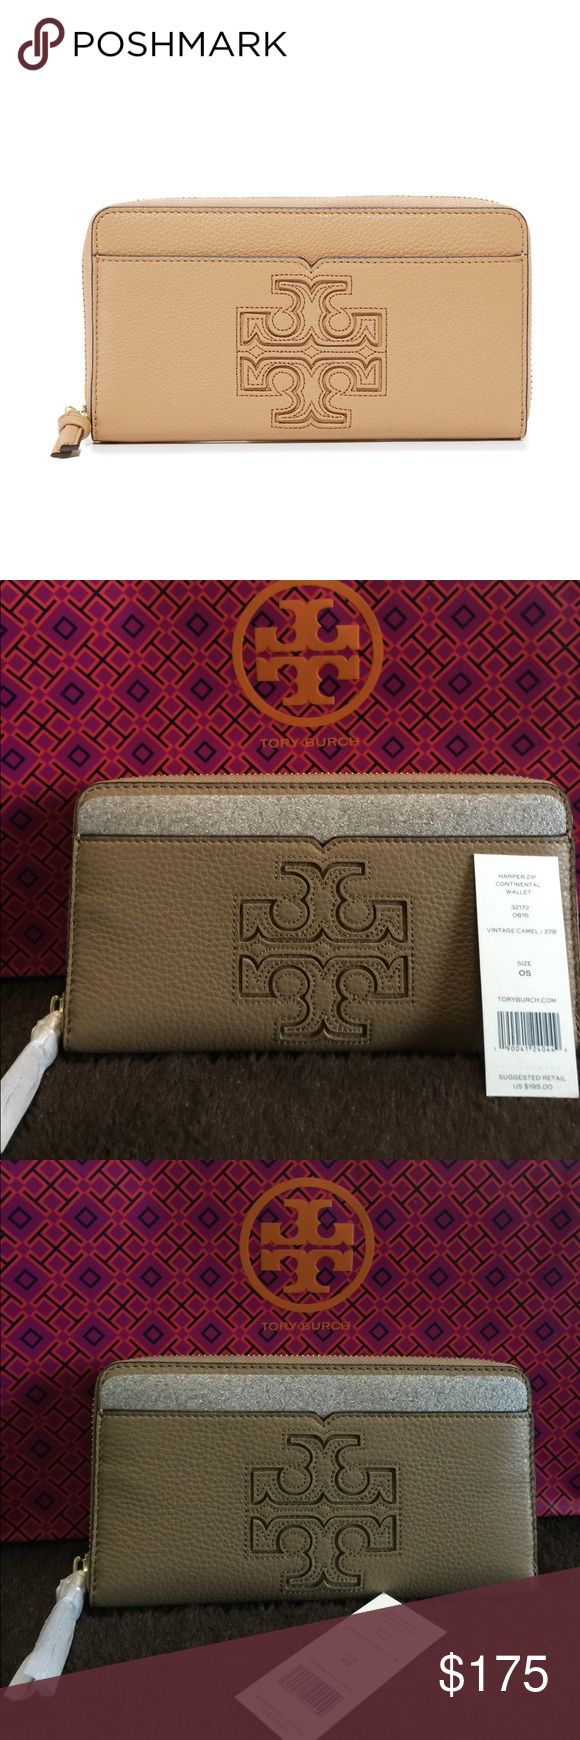 AUTHENTIC! NWT Tory Burch Continental Wallet Brand new with tag.  Vintage Camel.  No dust bag.  $195 Tory Burch Bags Wallets